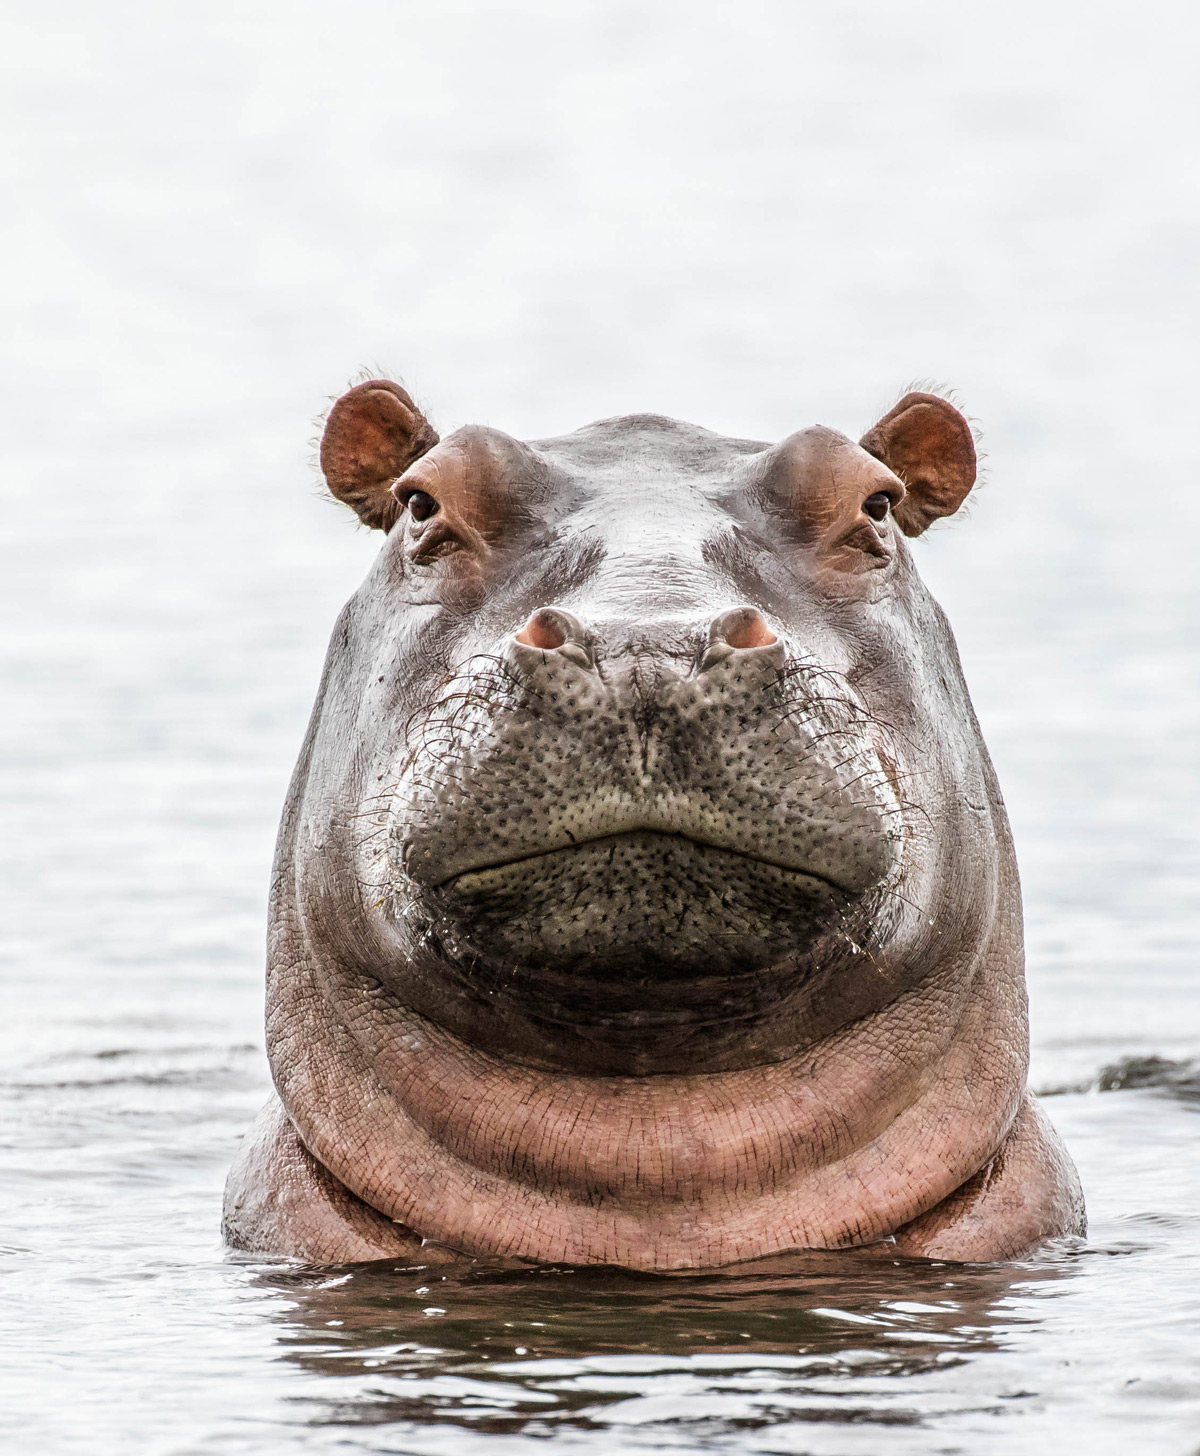 A hippo spotted in the Chobe River in Chobe National Park, Botswana © Cheryl Cranfield